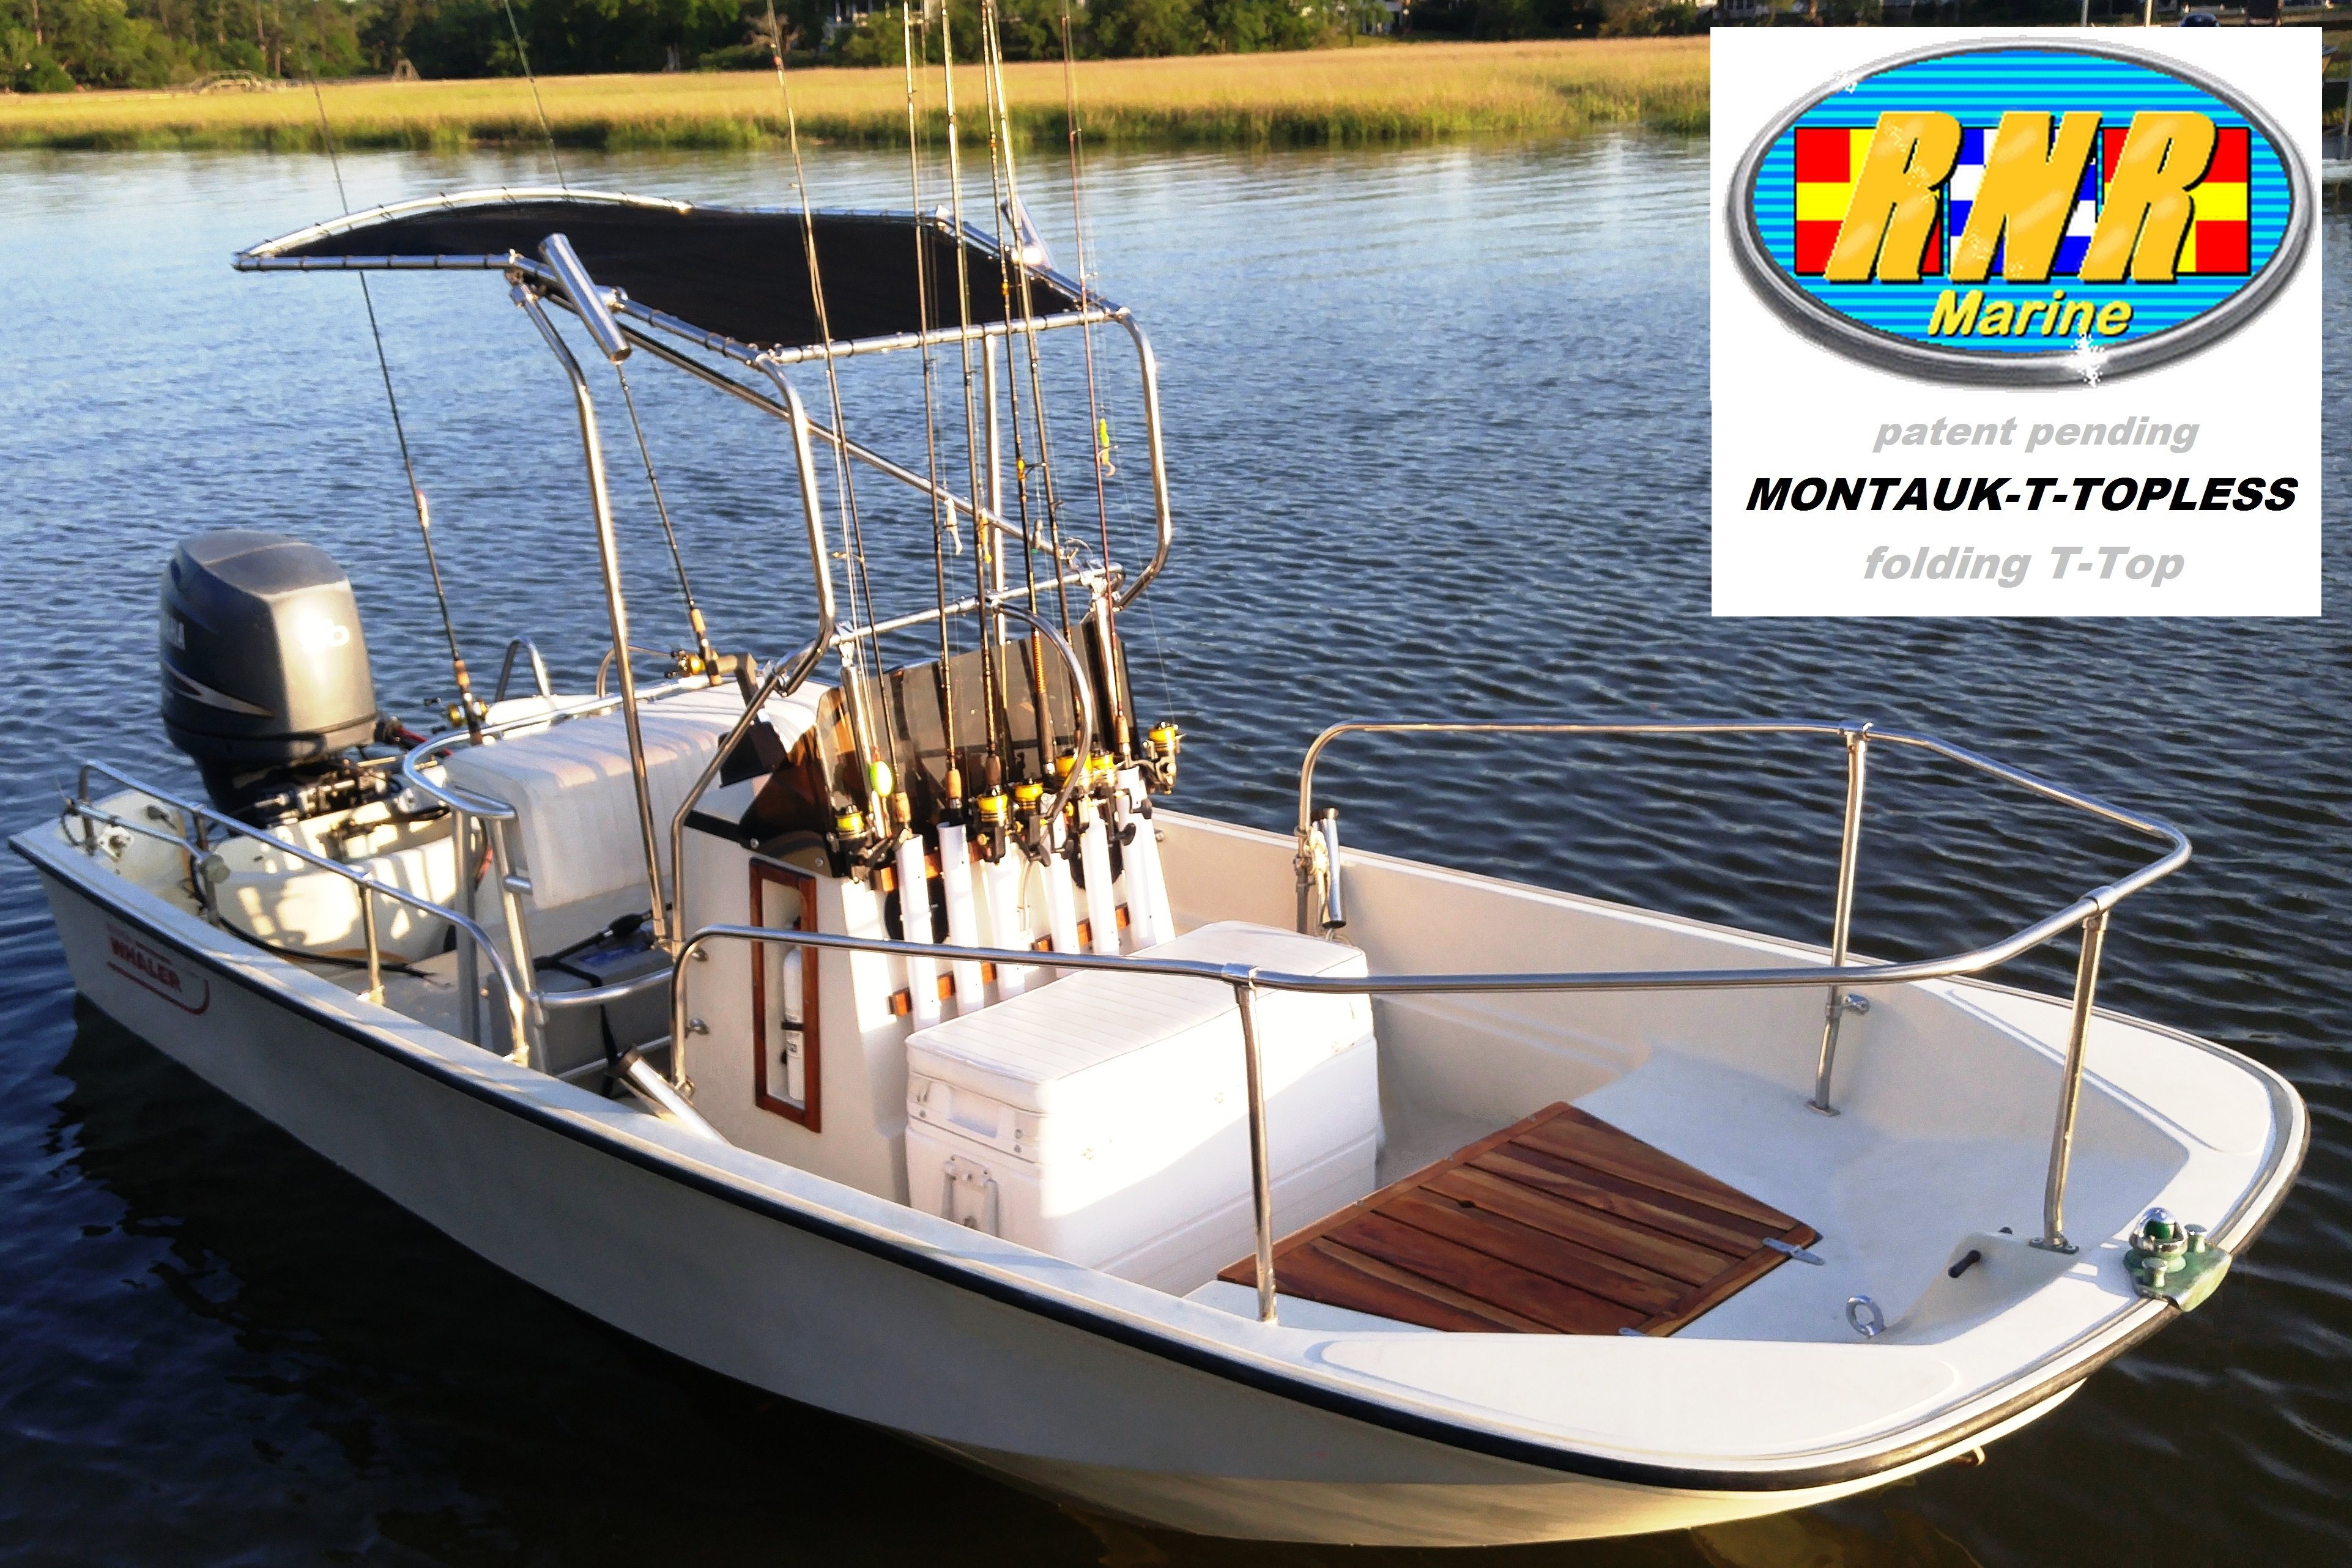 Boston Whaler Montauk 17, 19xx, Montauk-T-Topless™ (MT2) on the water, starboard front